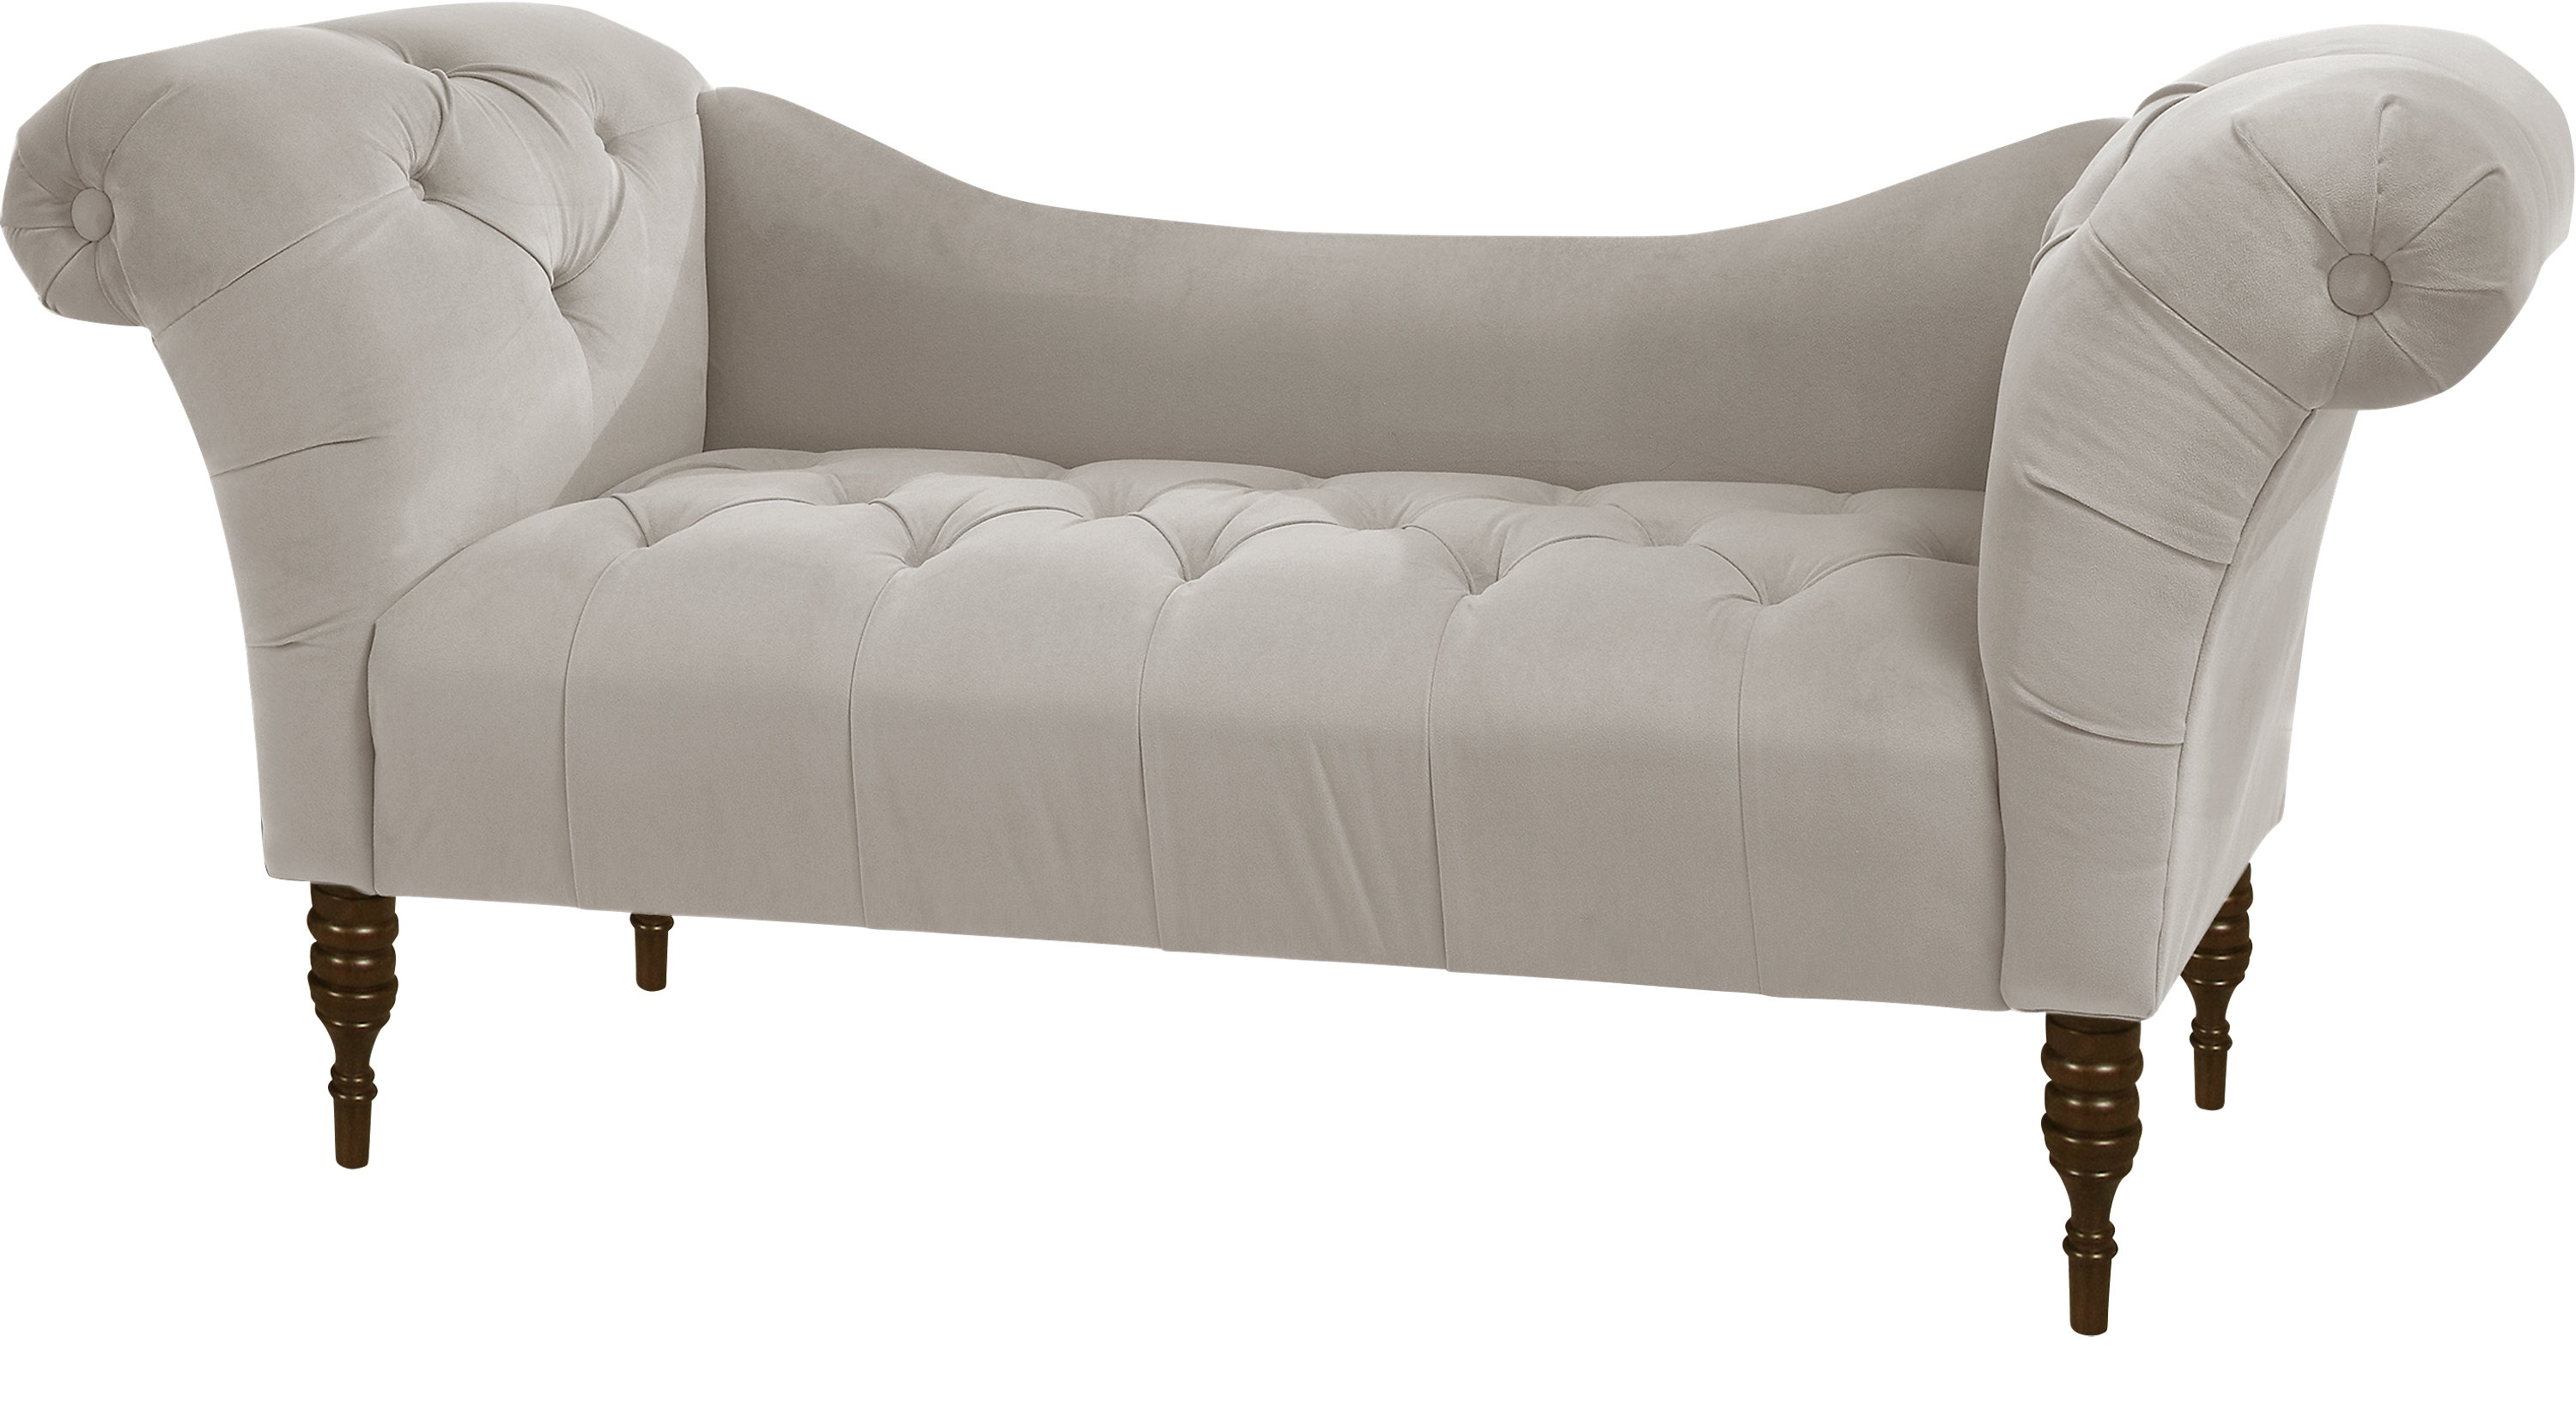 Current Grey Chaises – Grey Chaise Lounge Sofas Within Gray Chaise Lounges (View 14 of 15)